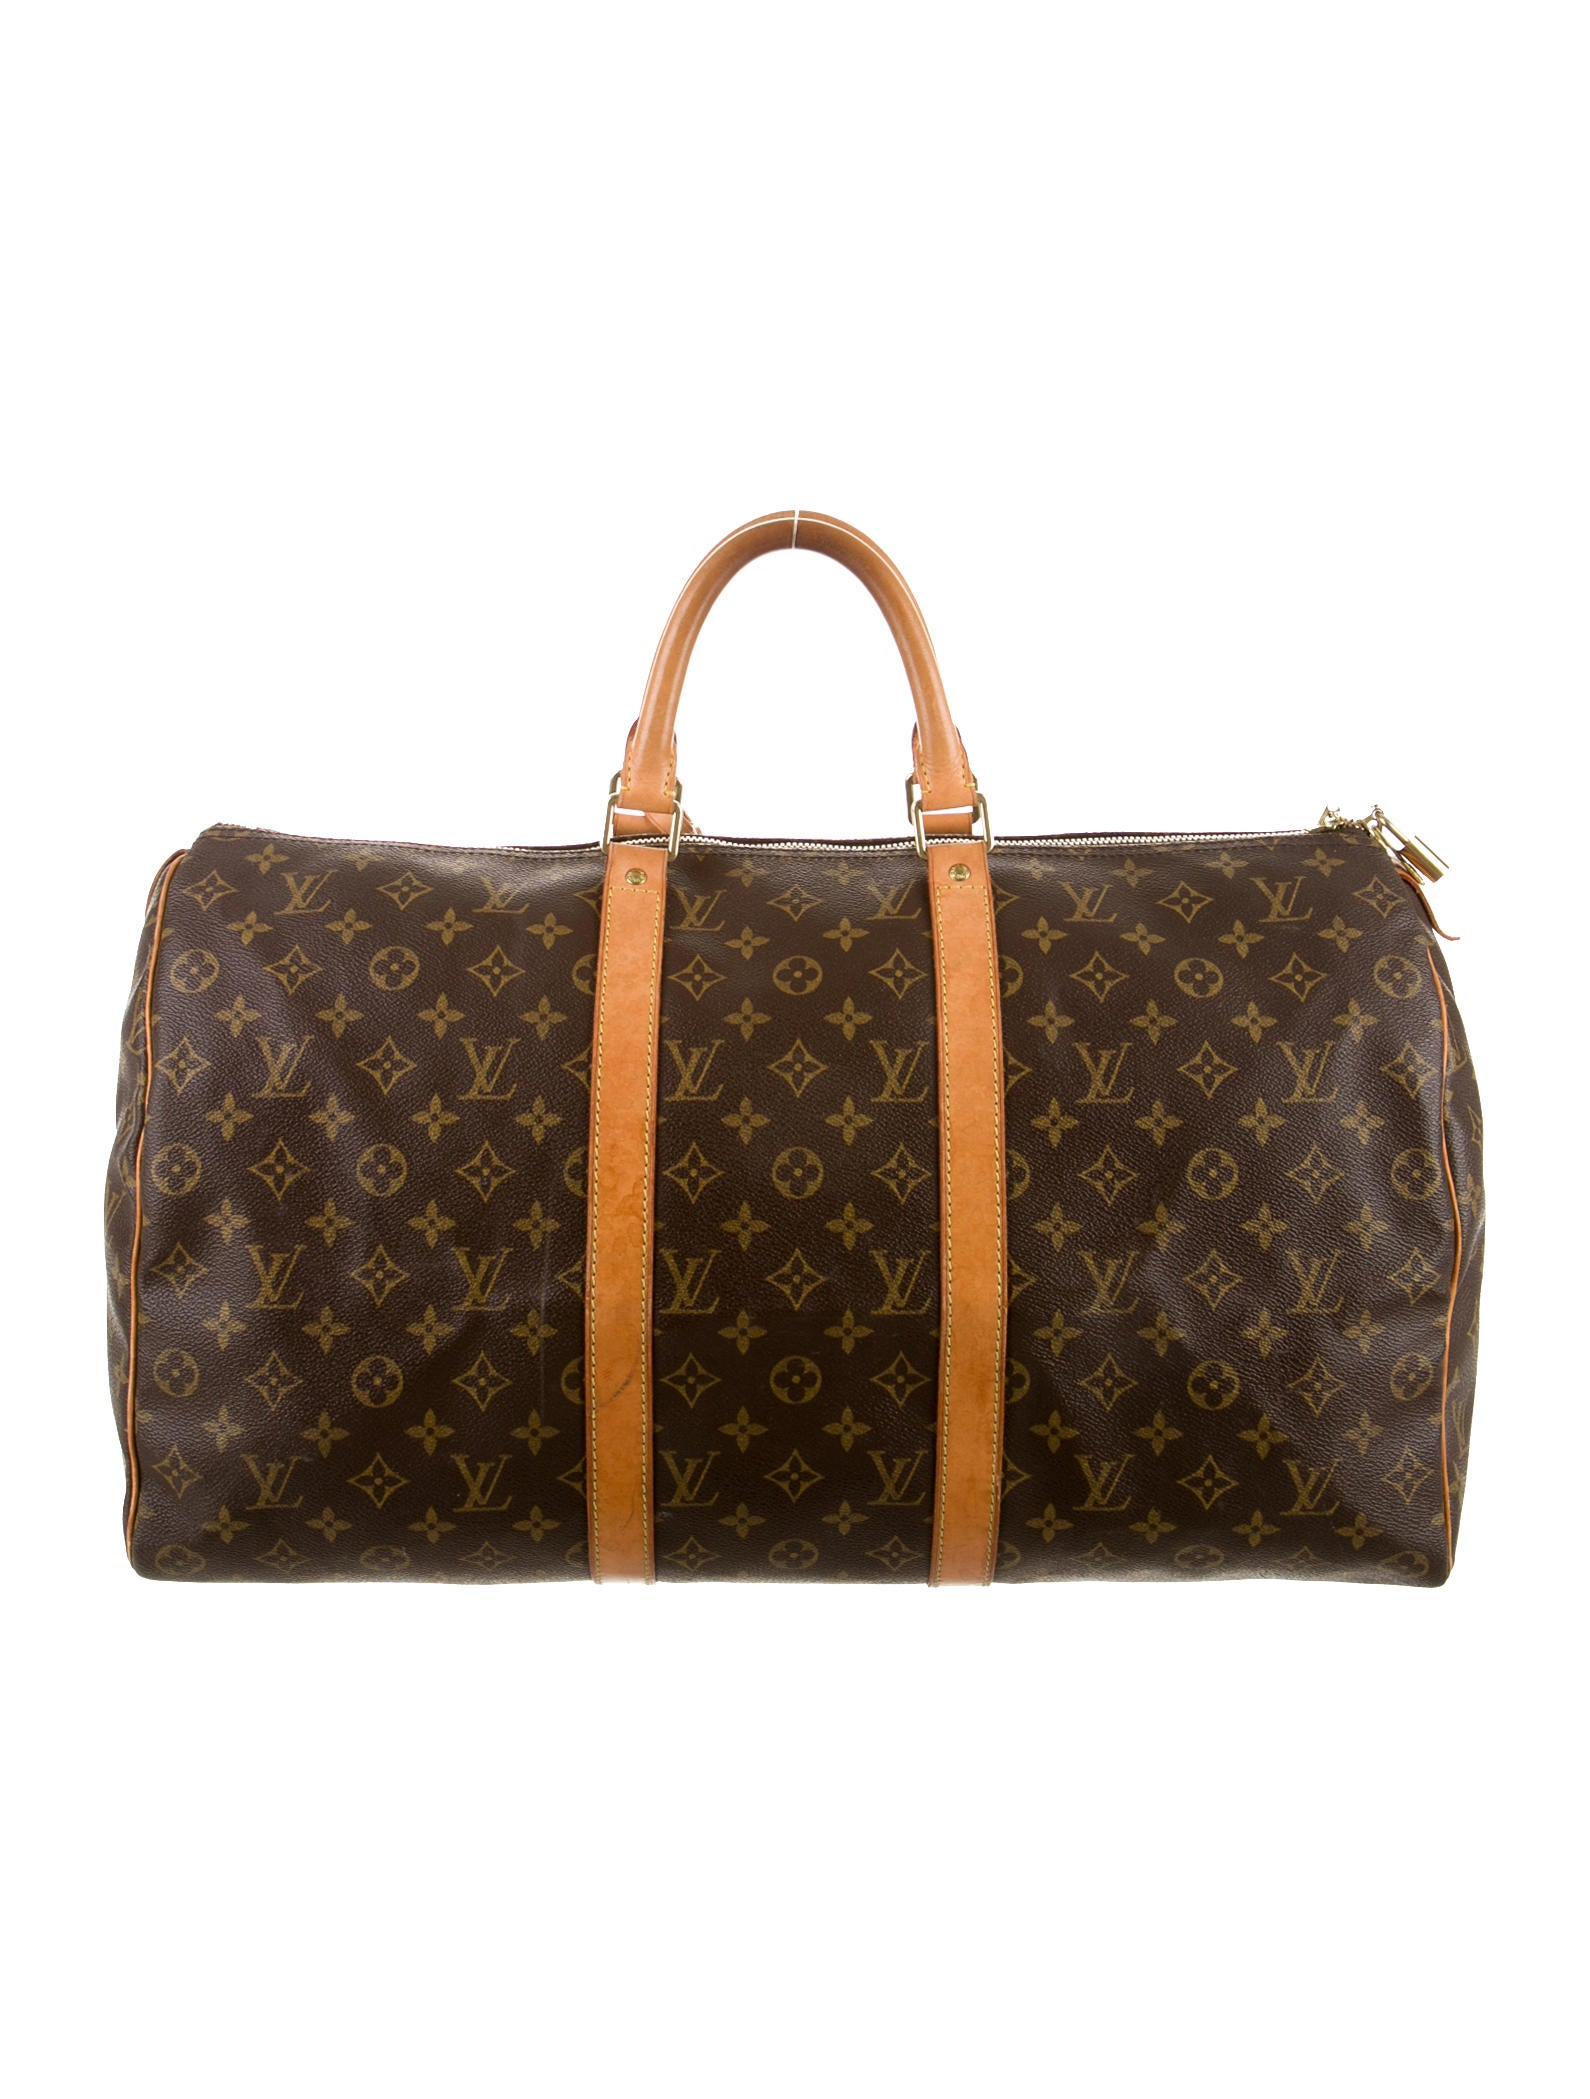 louis vuitton monogram keepall 55 handbags lou63895. Black Bedroom Furniture Sets. Home Design Ideas